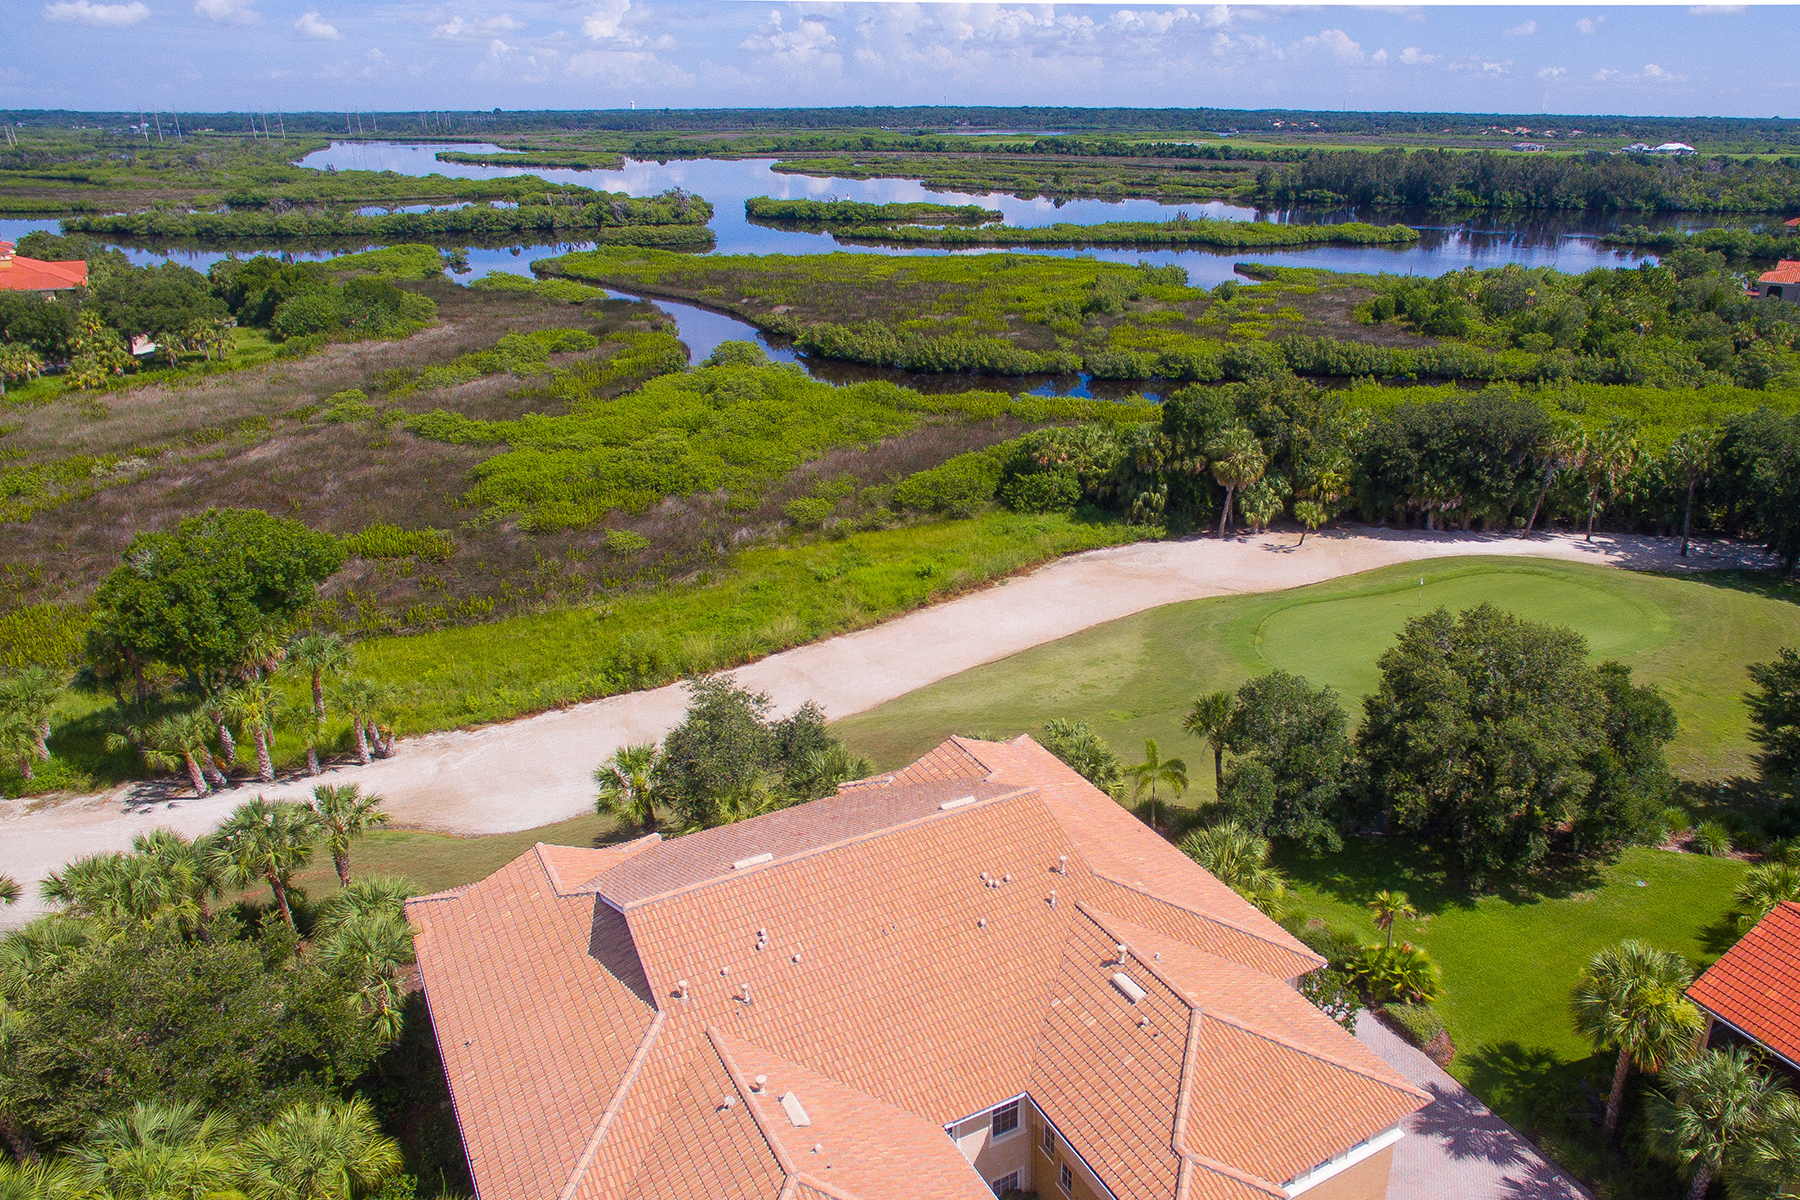 Copropriété pour l Vente à WATERLEFE GOLF AND RIVERCLUB 9711 Sea Turtle Terr 101 Bradenton, Florida, 34212 États-Unis